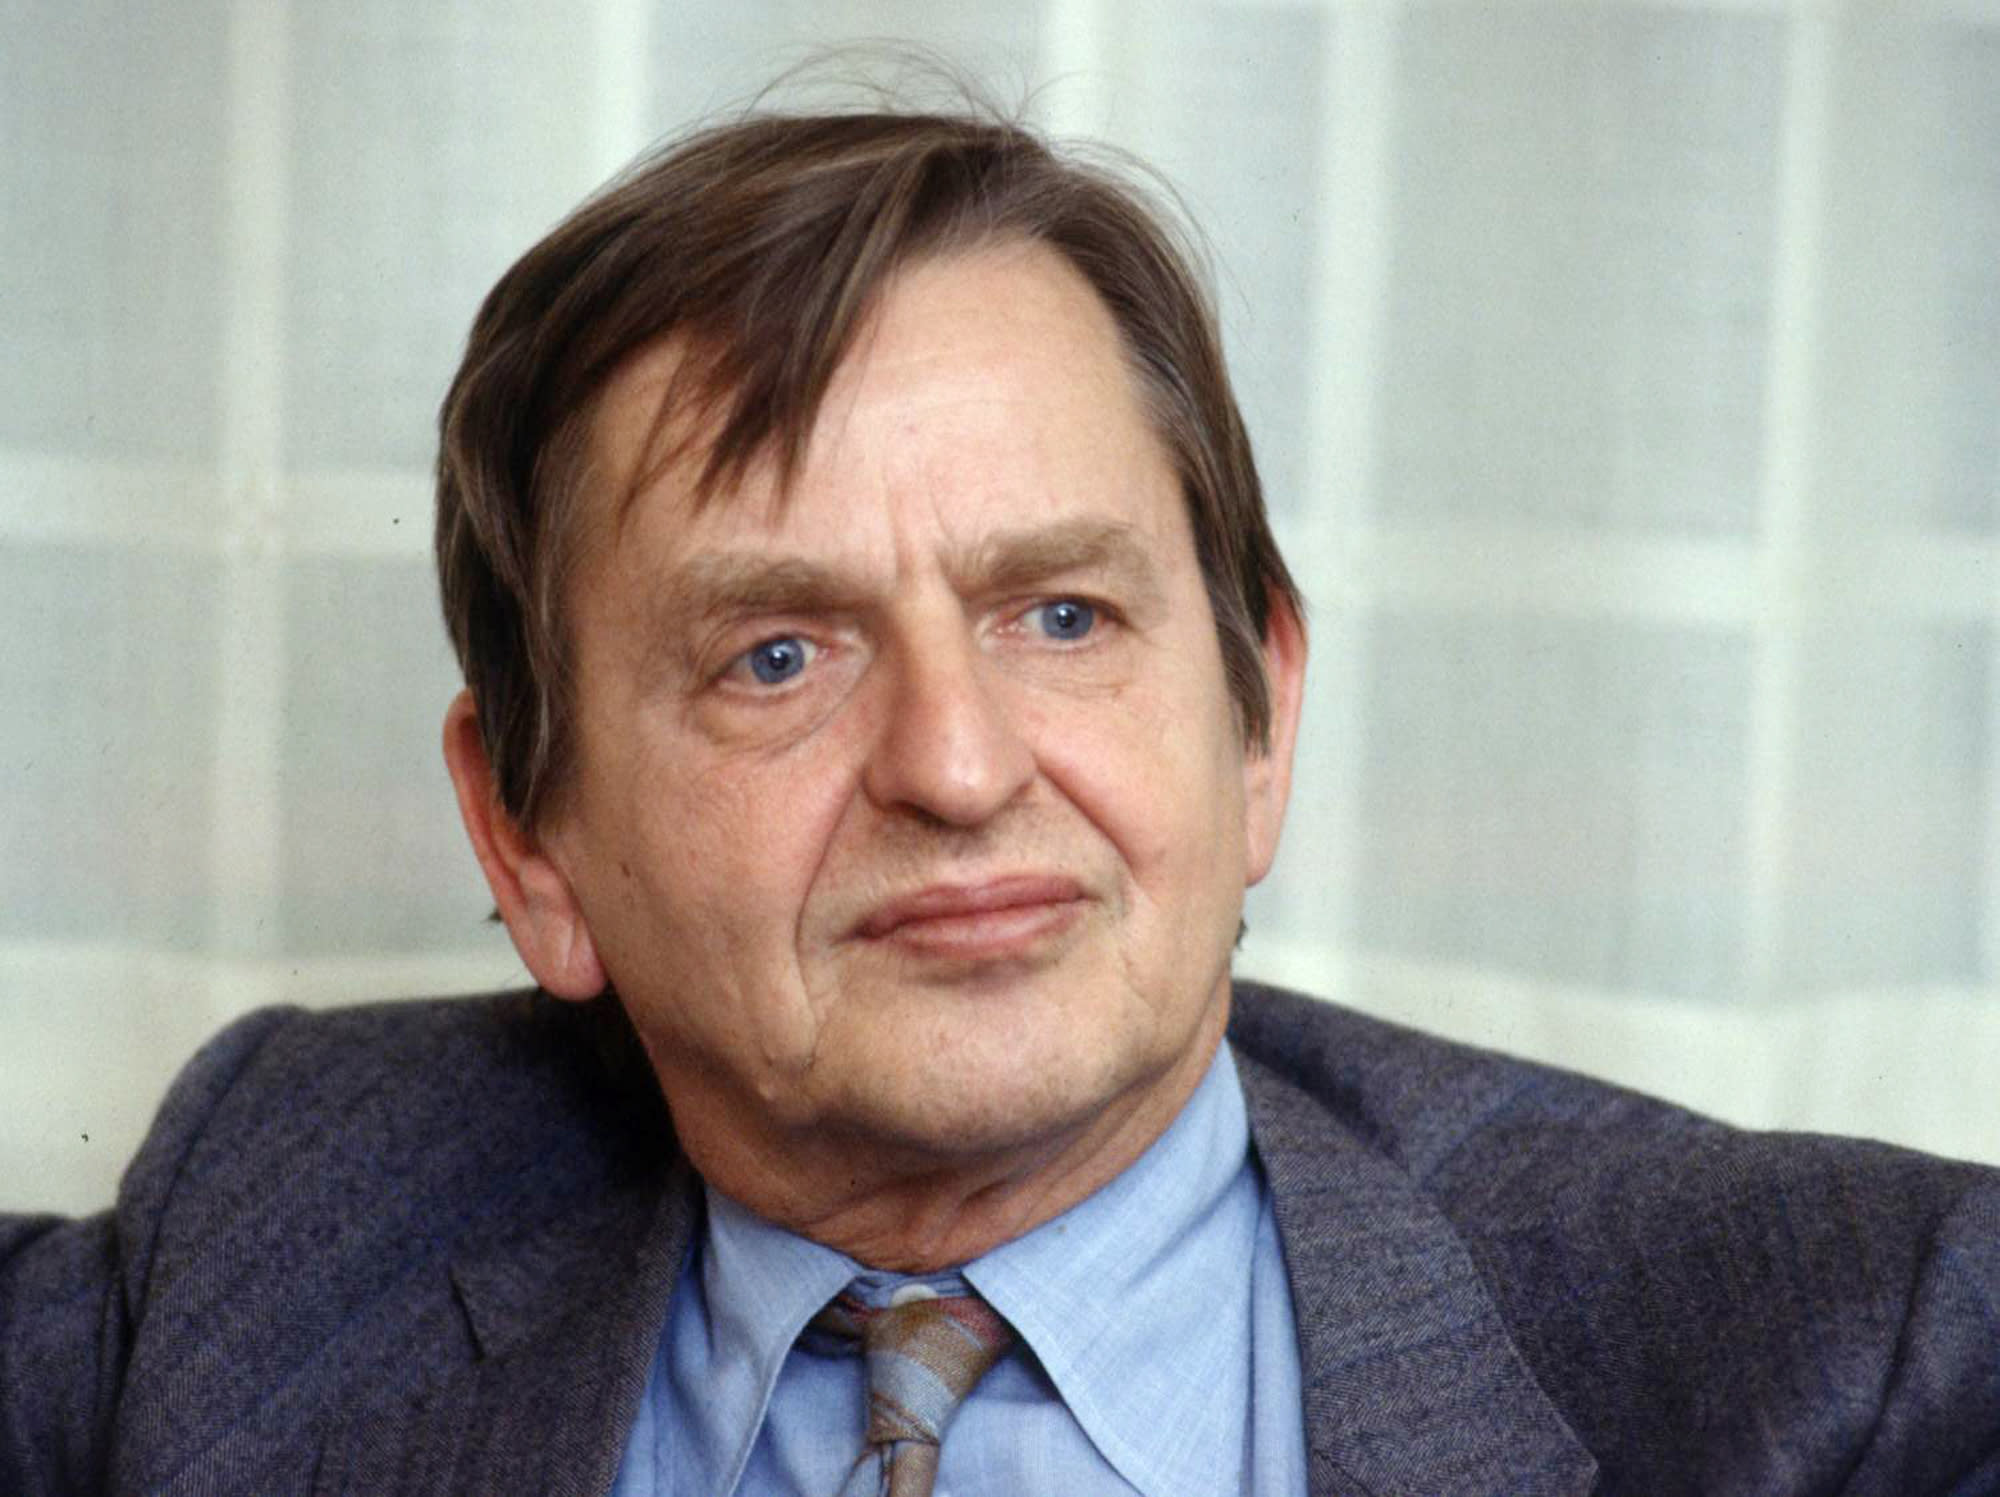 Sweden won't reopen probe into 1986 slaying of PM Palme